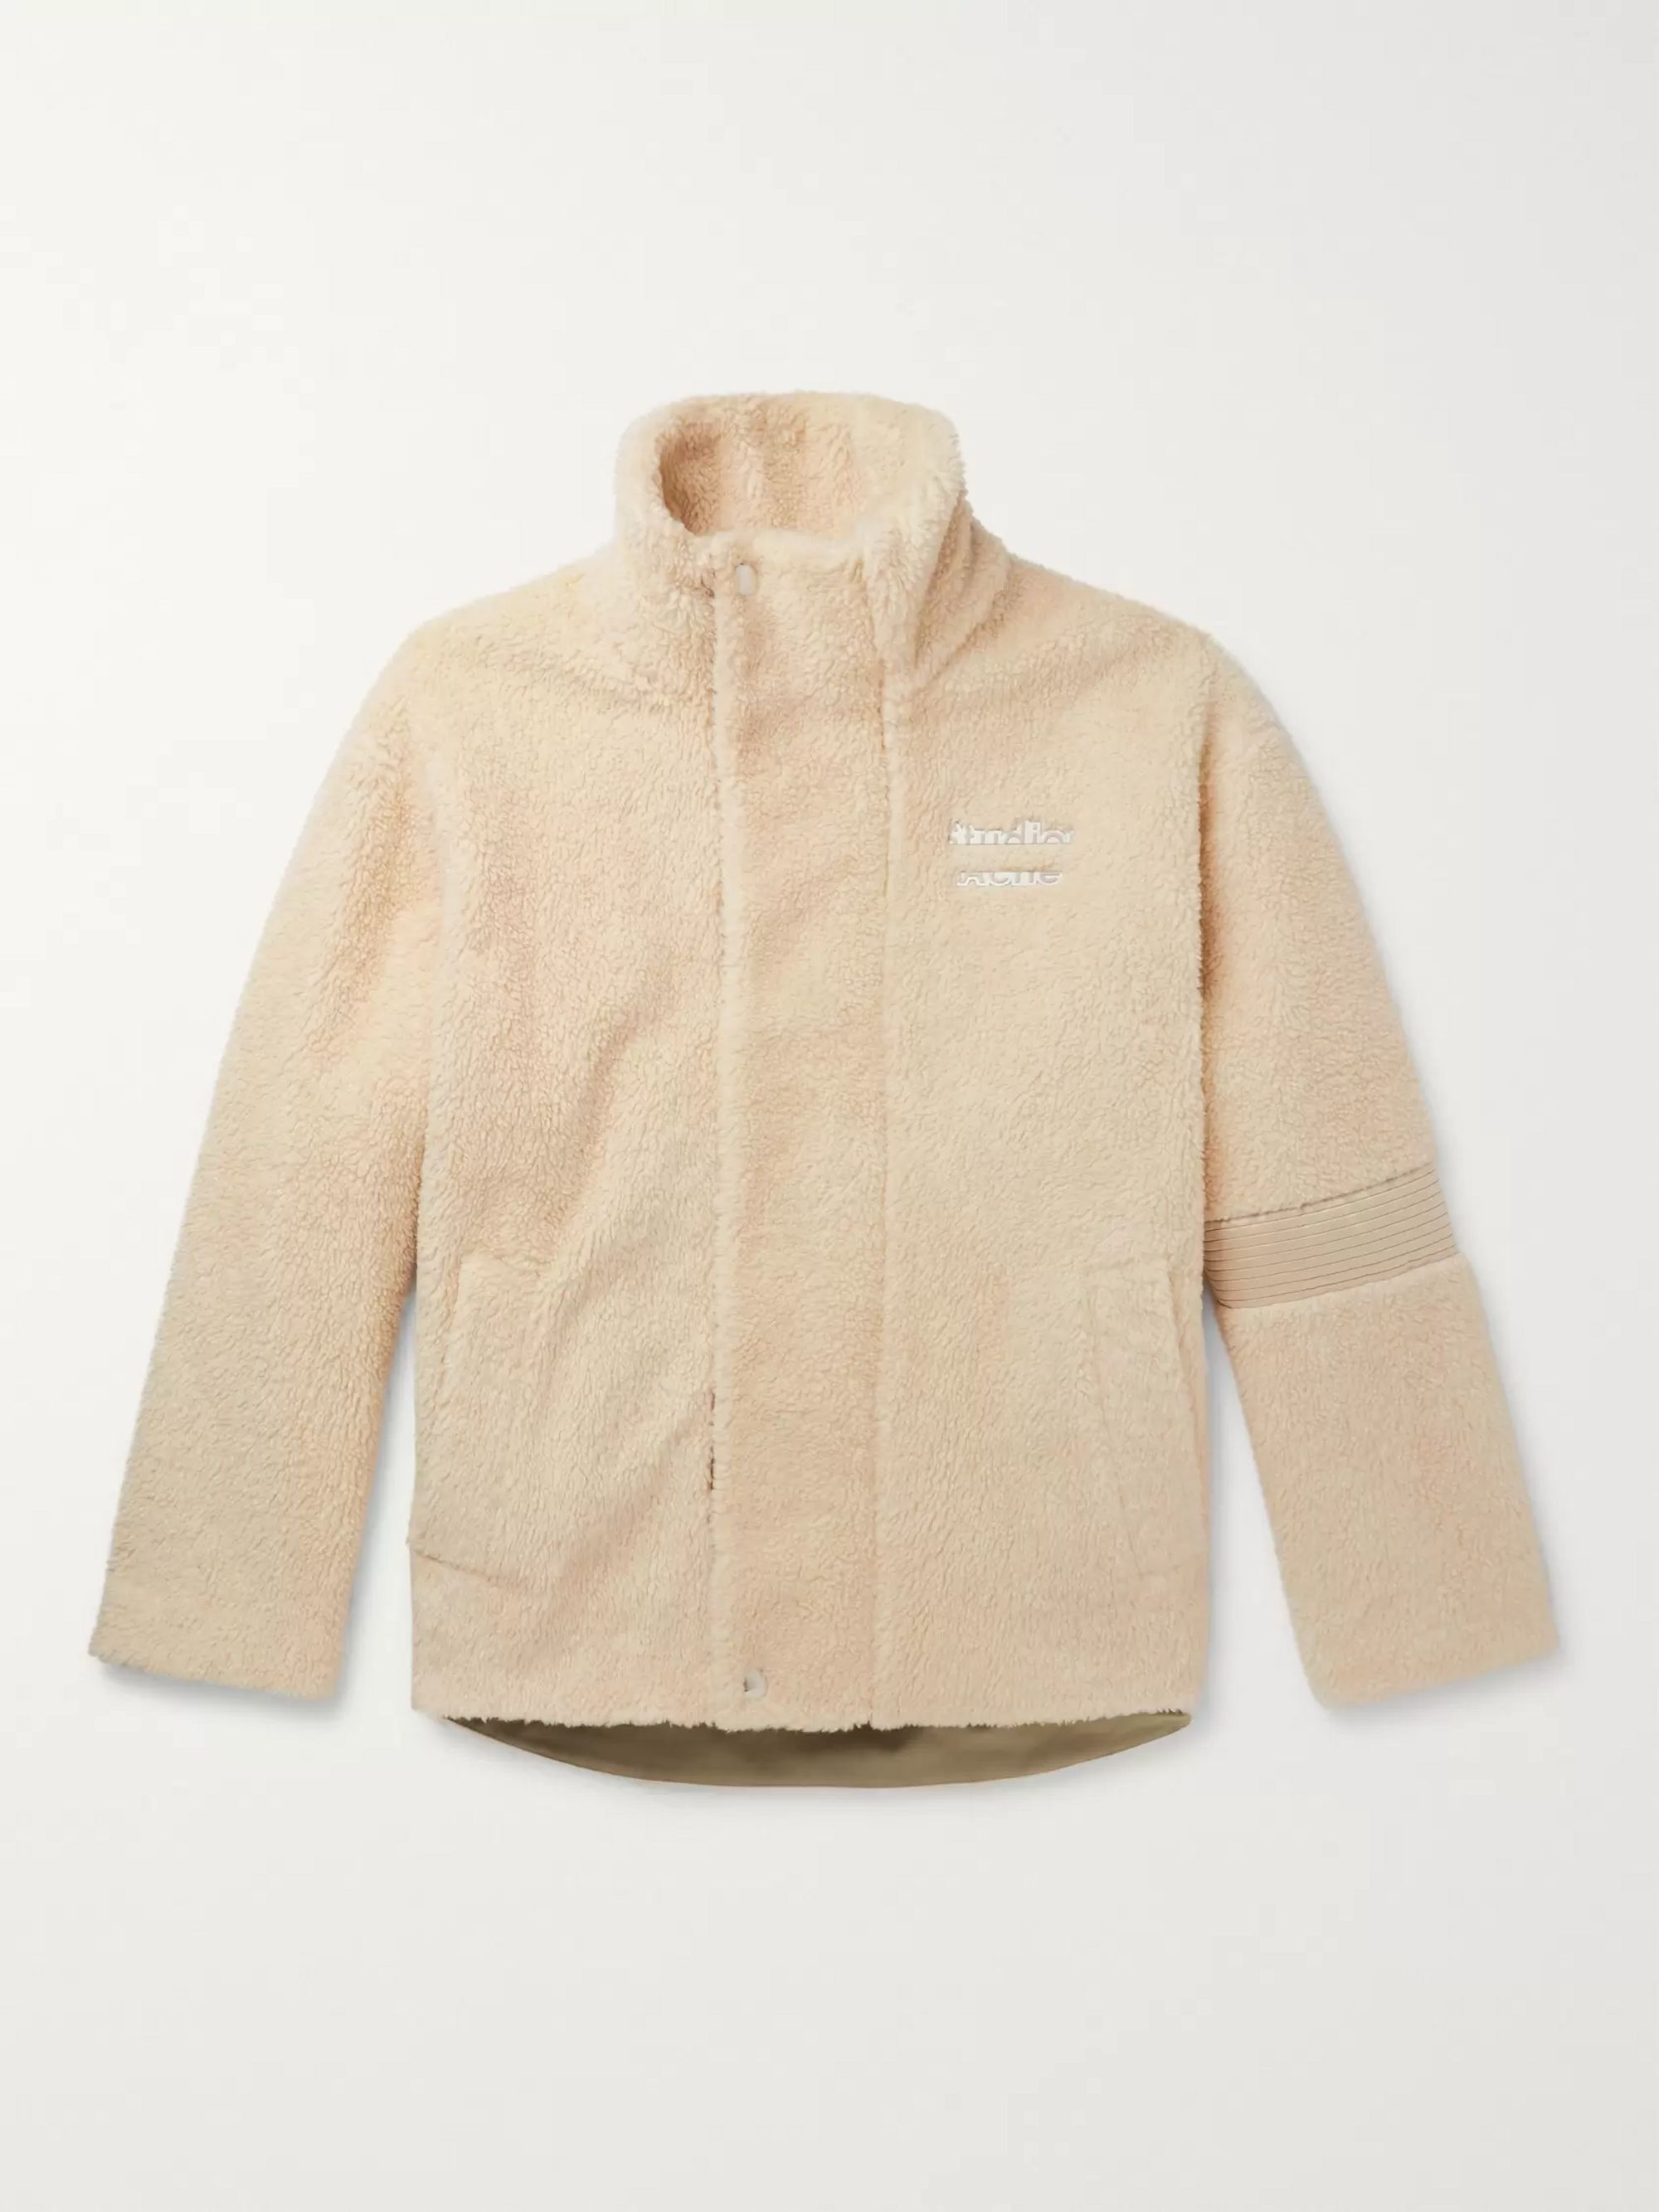 Acne Studios Oversized Logo-Detailed Fleece Jacket